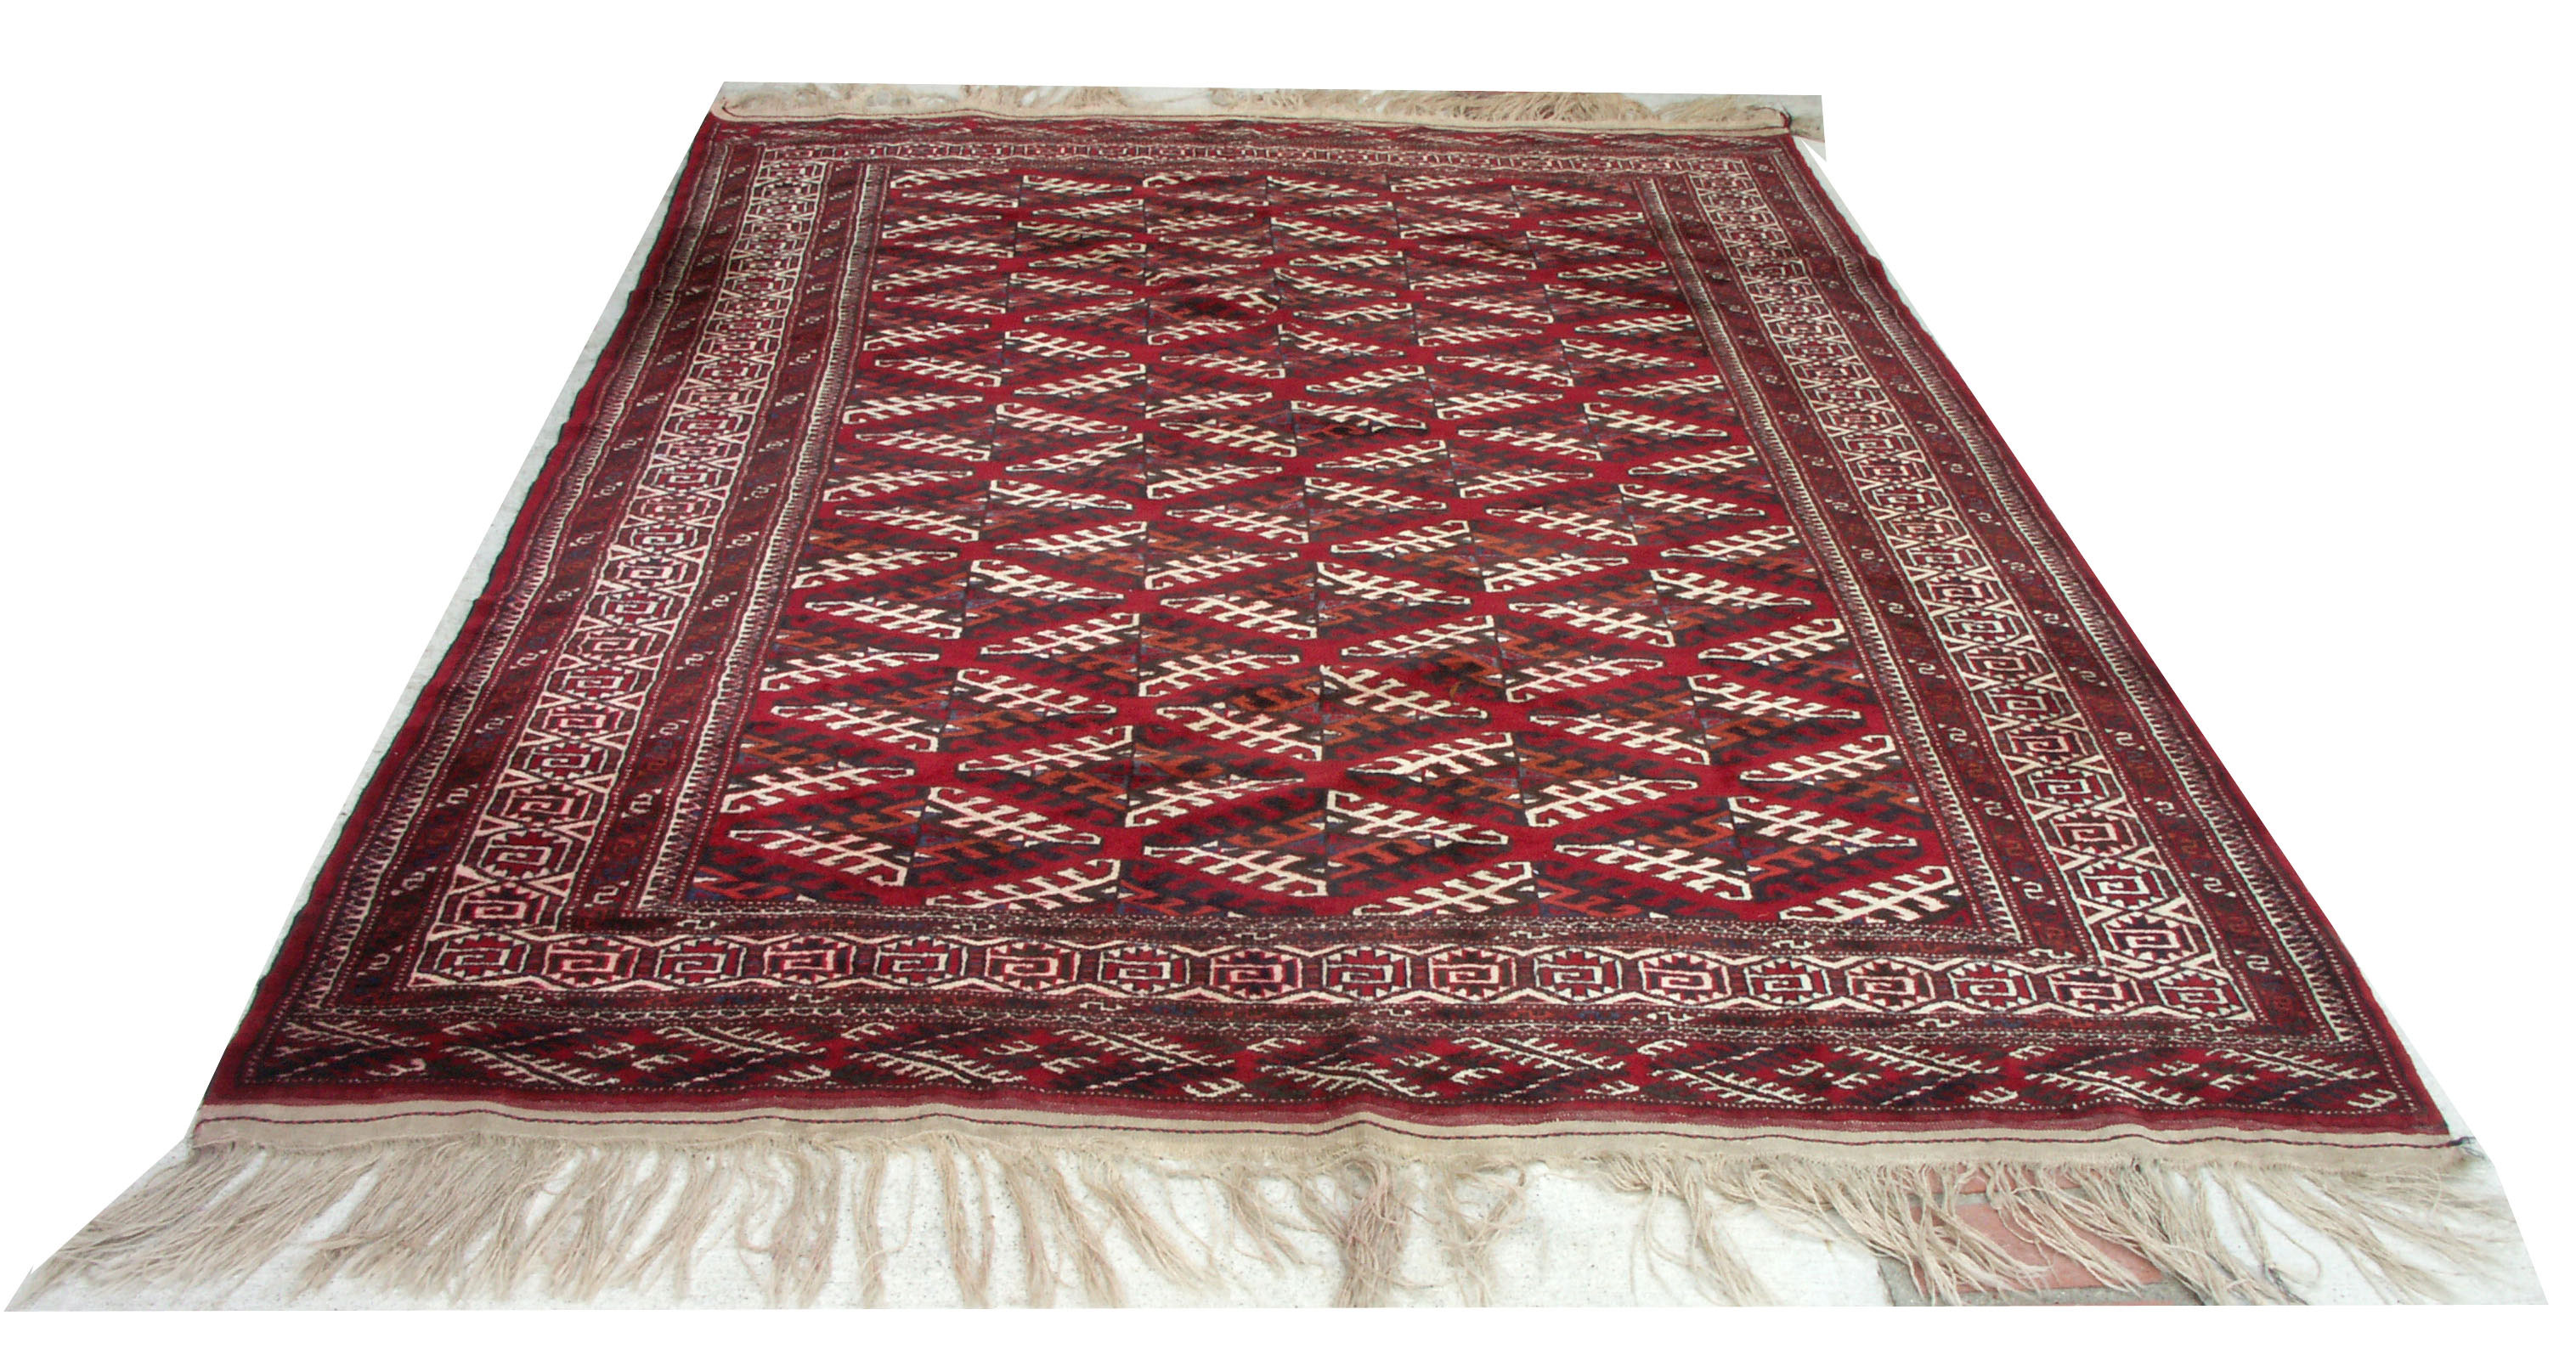 carpets and rugs x rugs products grobe oriental carpets and ethnic arts WNPKFZH